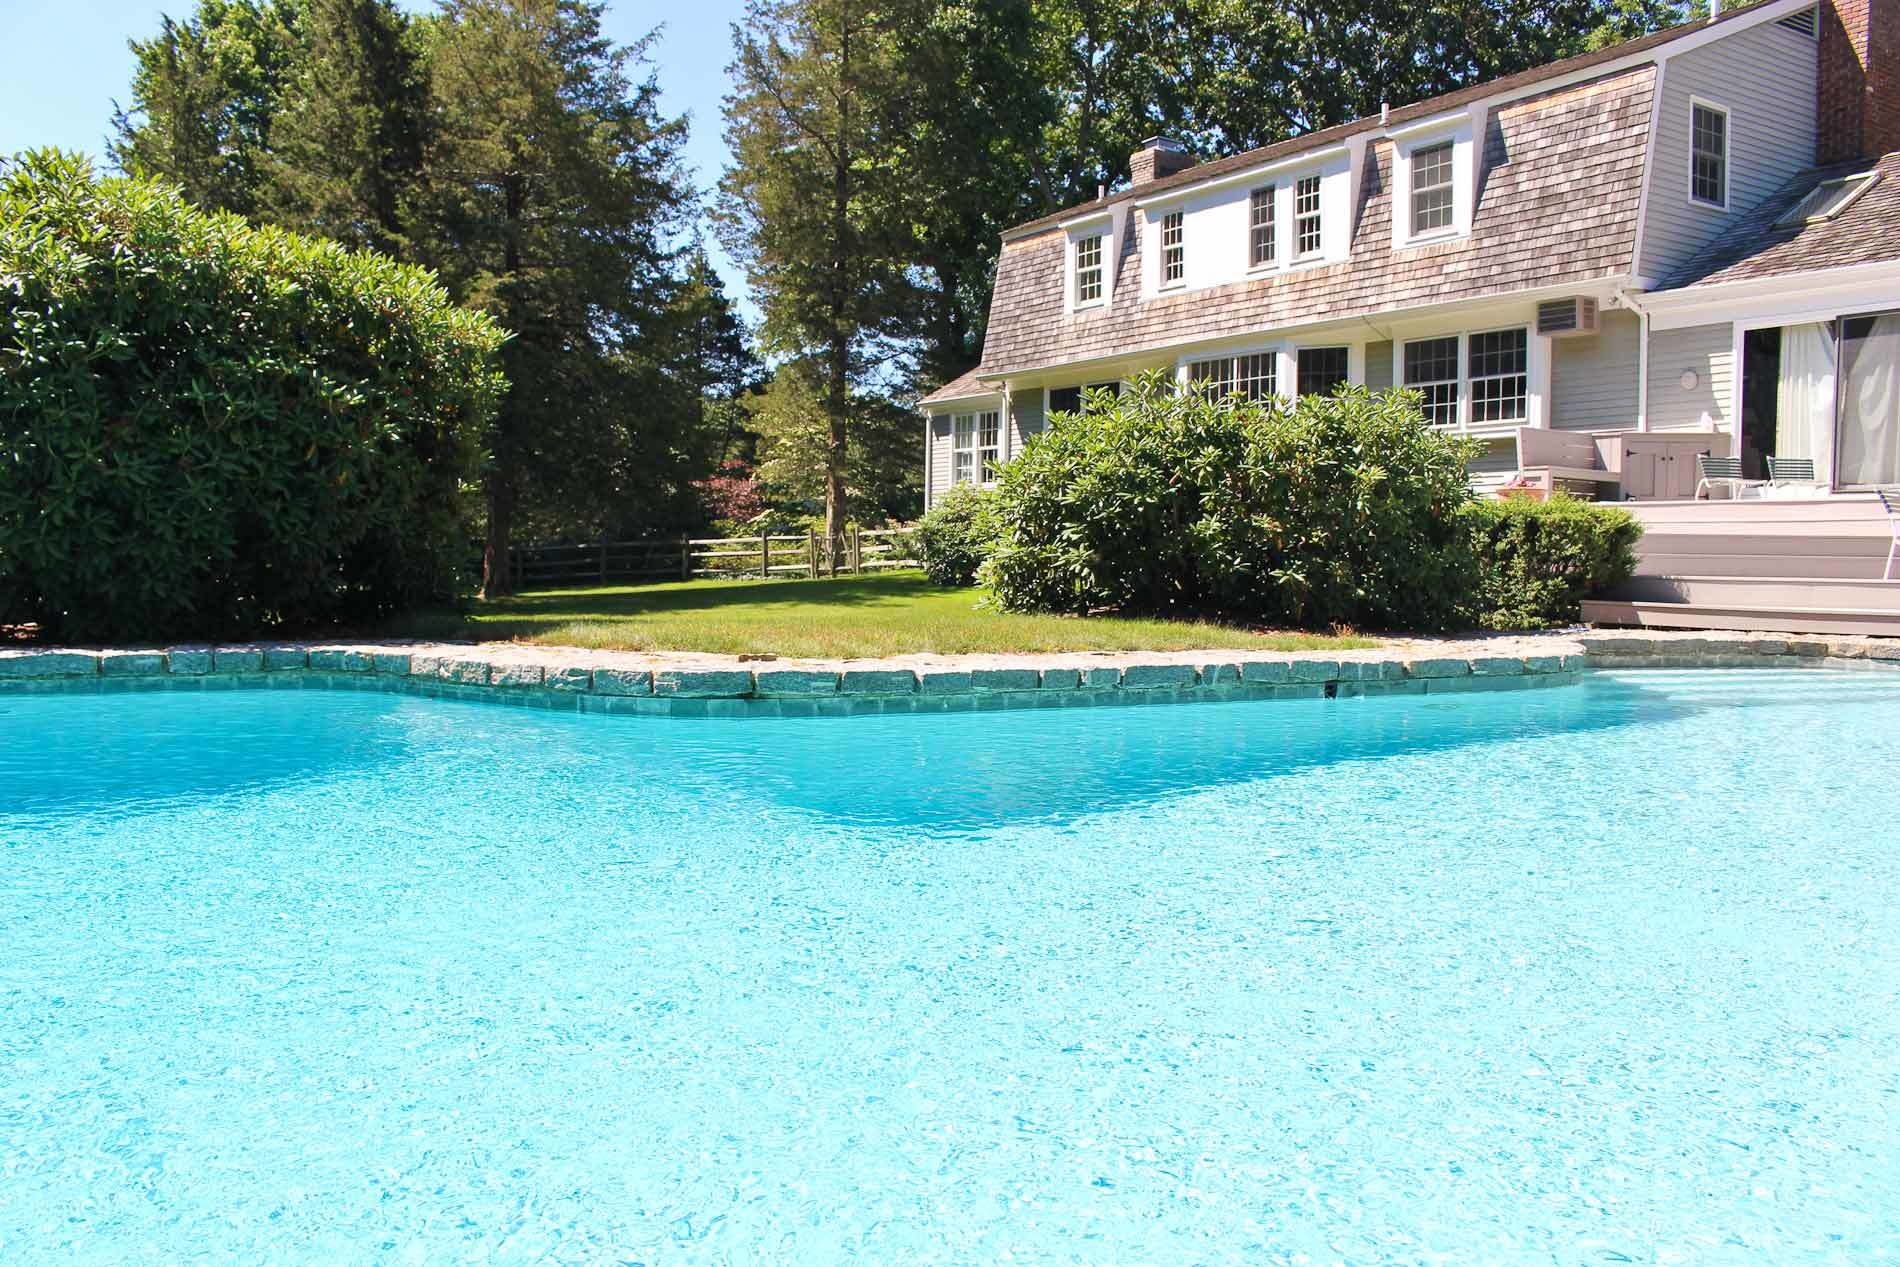 Homes with swimming pool for sale in danbury ct find and for Houses for sale pool